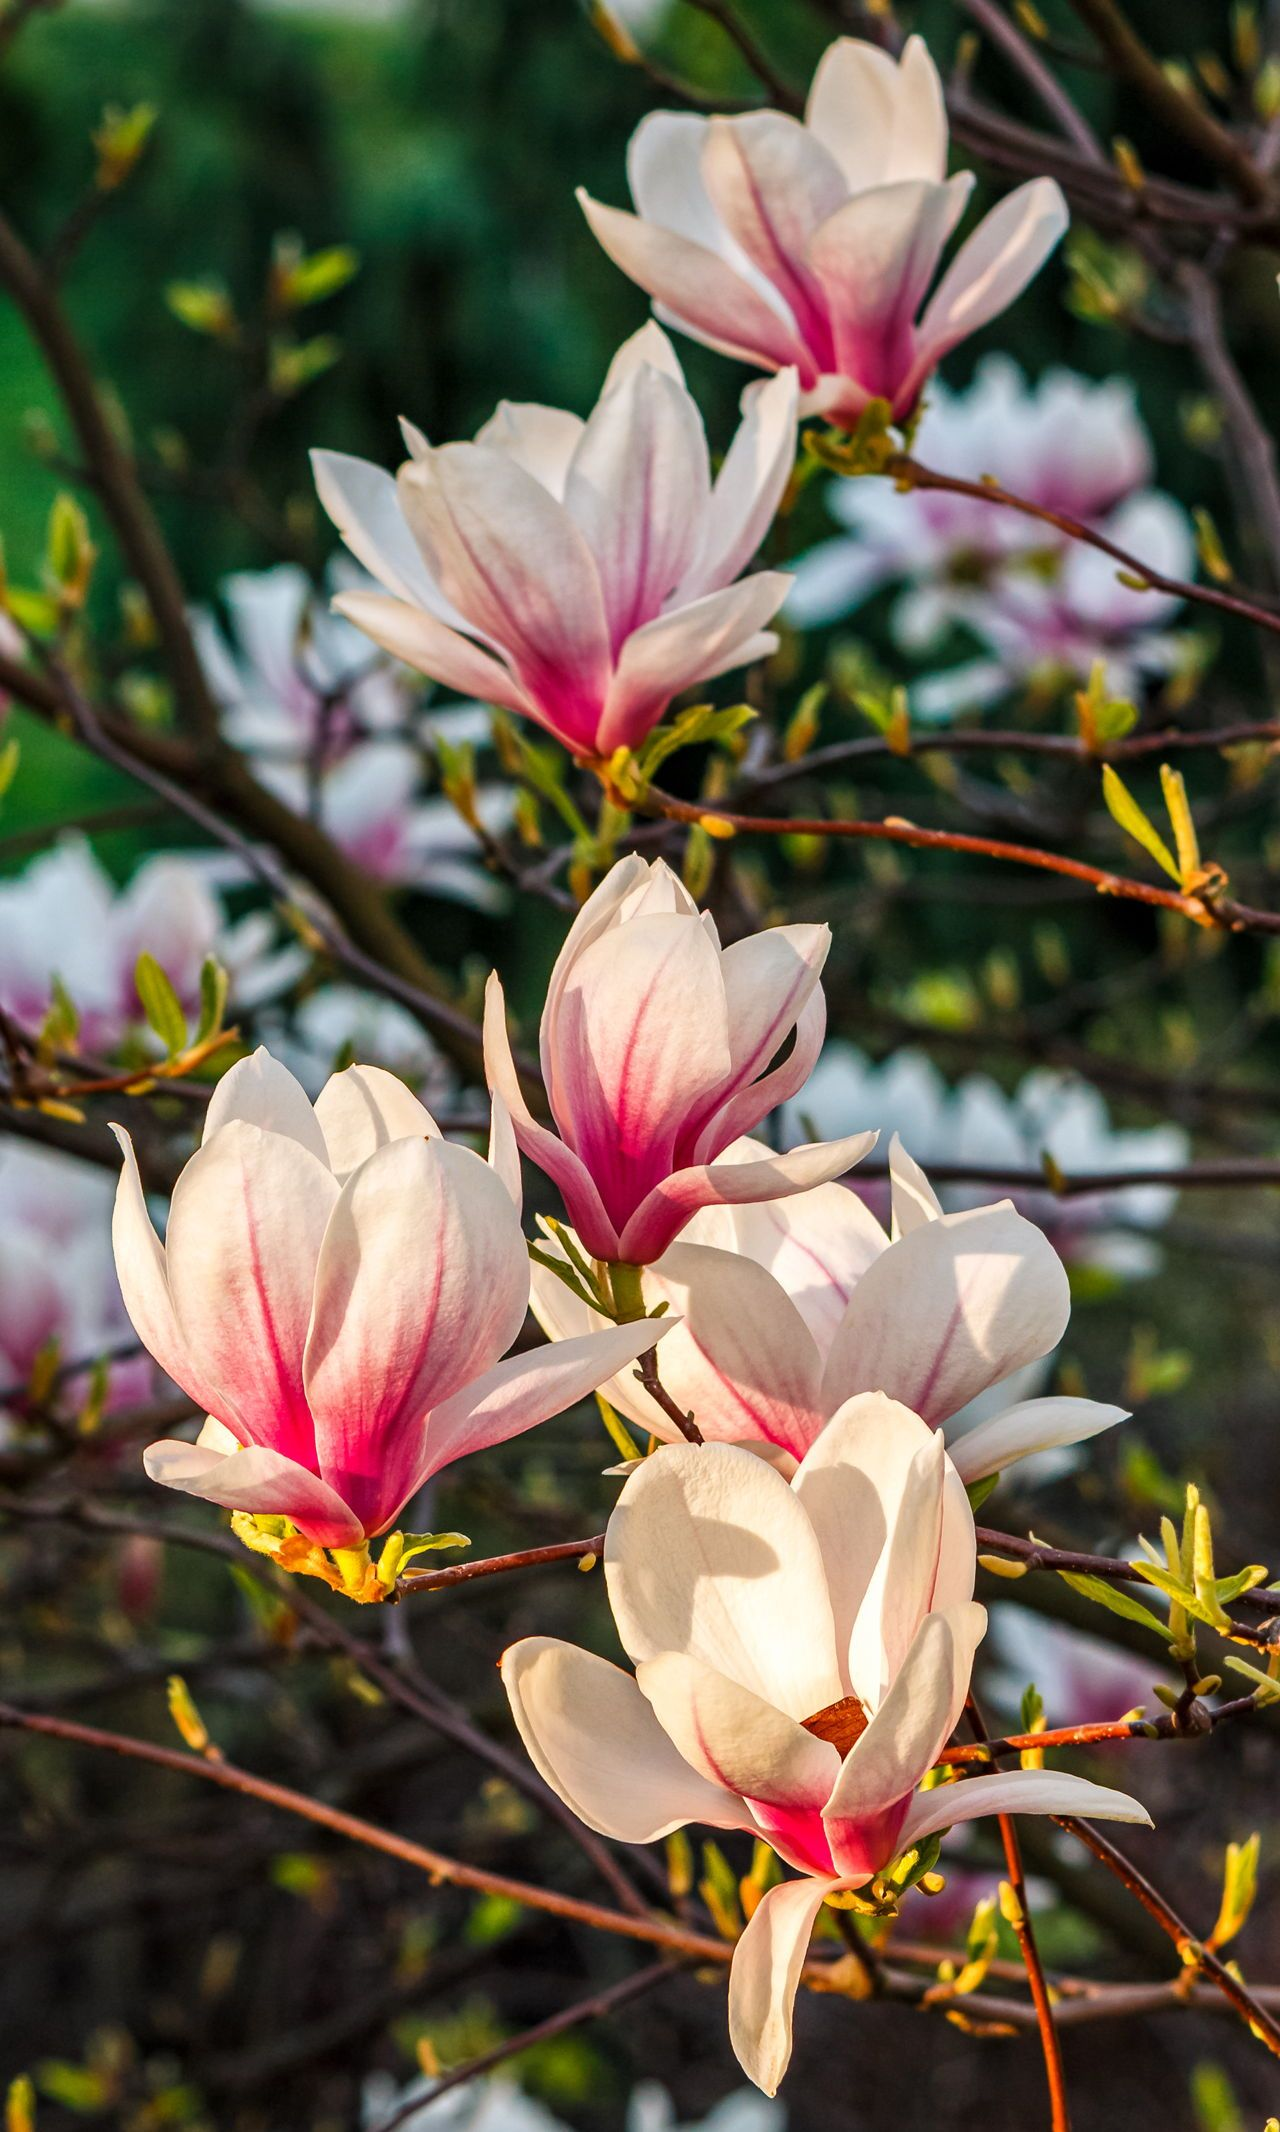 You Need To Be Aware Of The Diseases That Affect Magnolia Trees Gardenerdy In 2020 Nature Photography Flowers Magnolia Flower Magnolia Trees